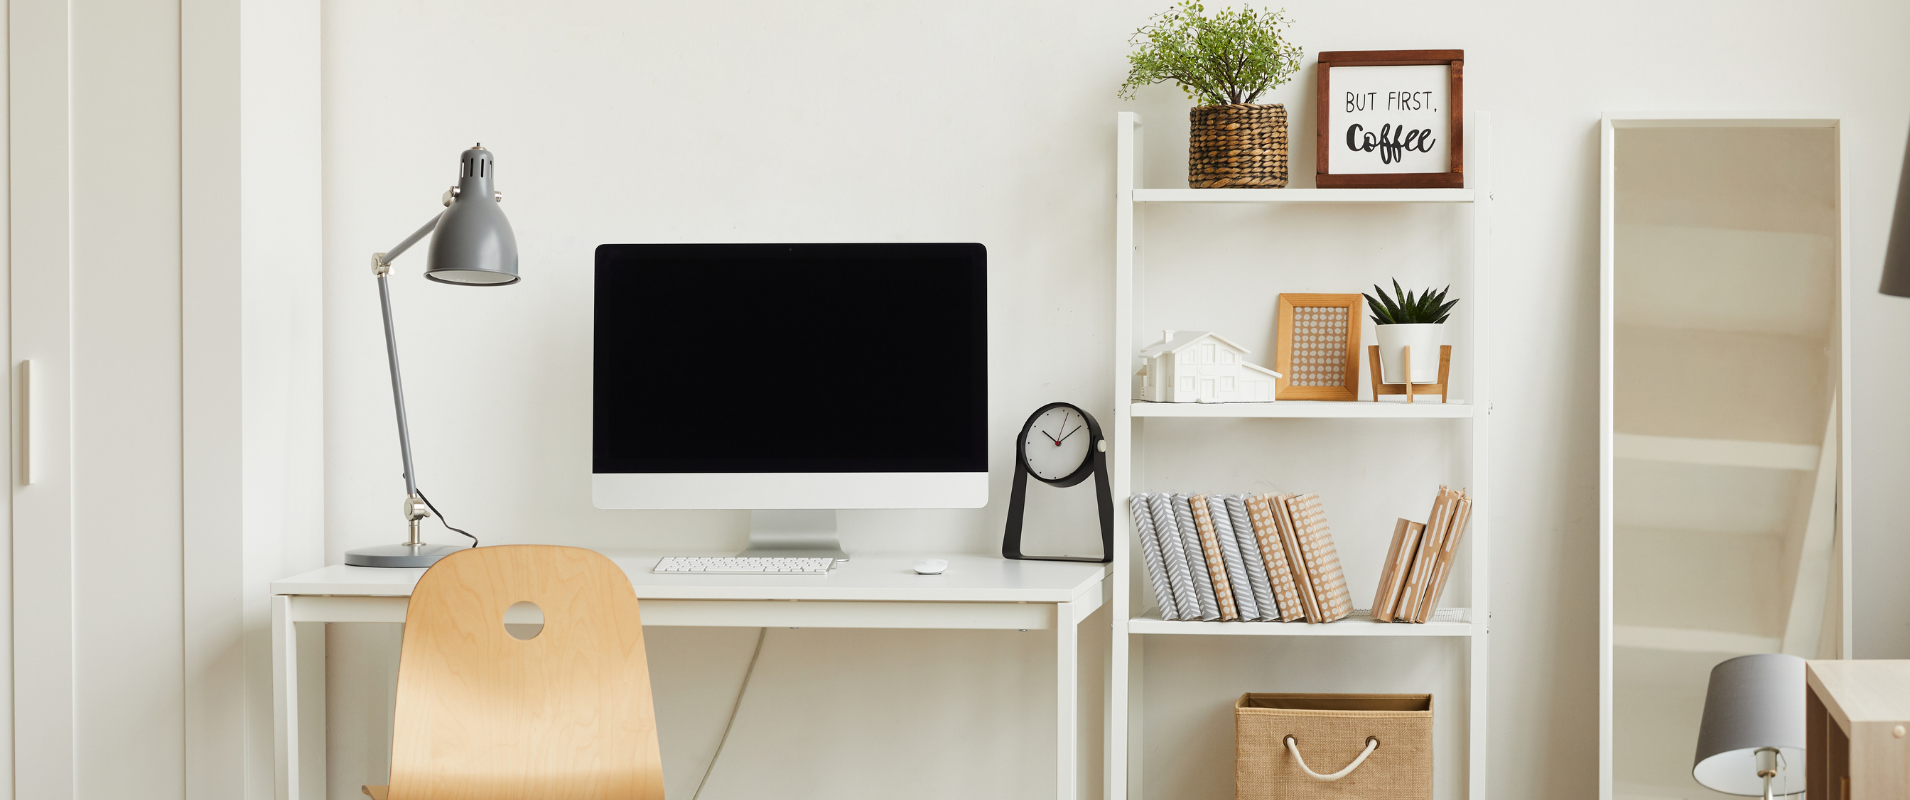 Declutter your Home Office in 5 Easy Steps